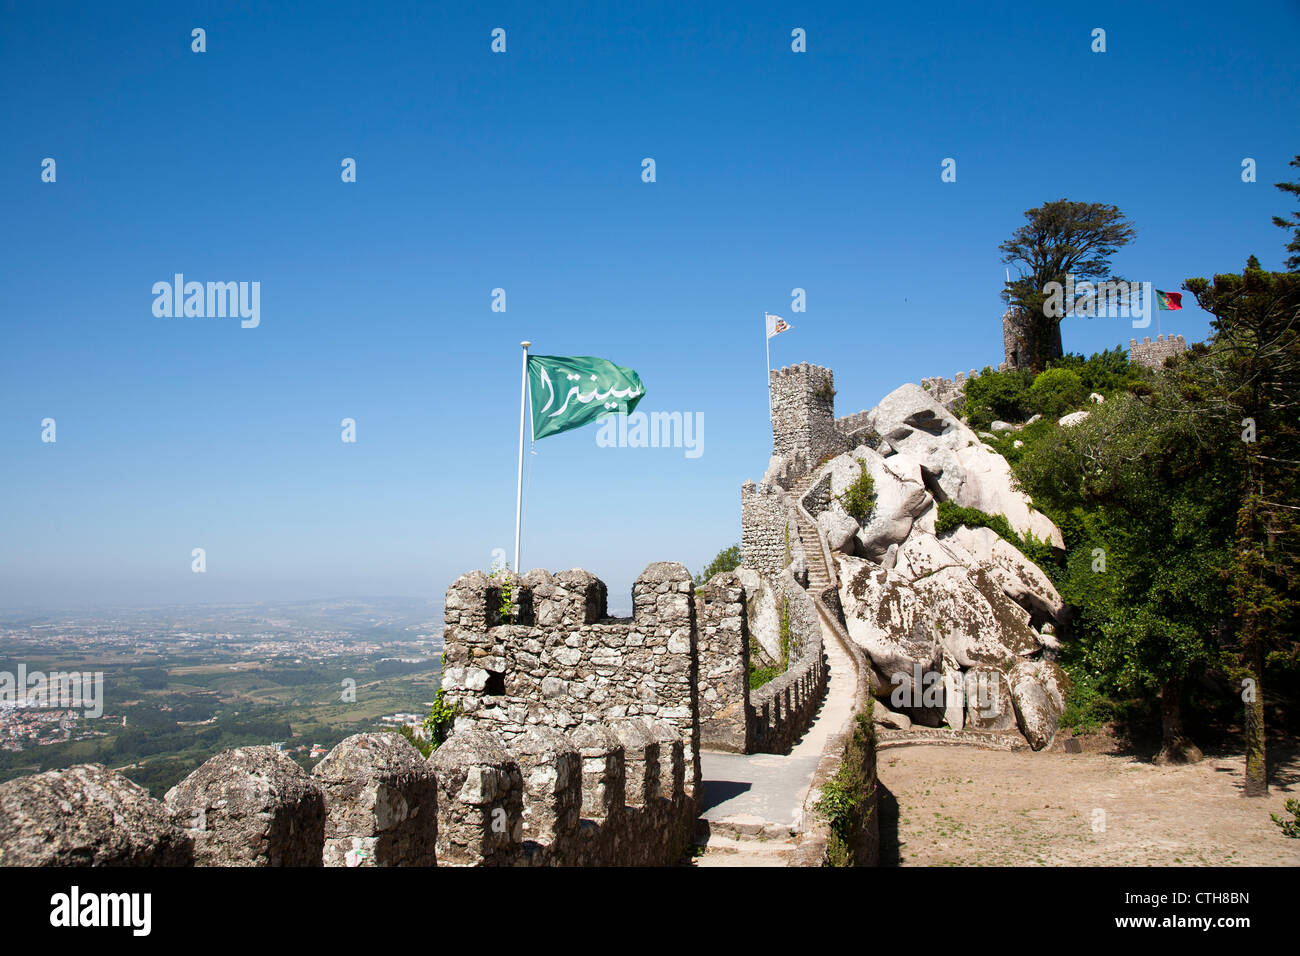 Castelo Dos Mouros in Sintra - Portugal - Stock Image